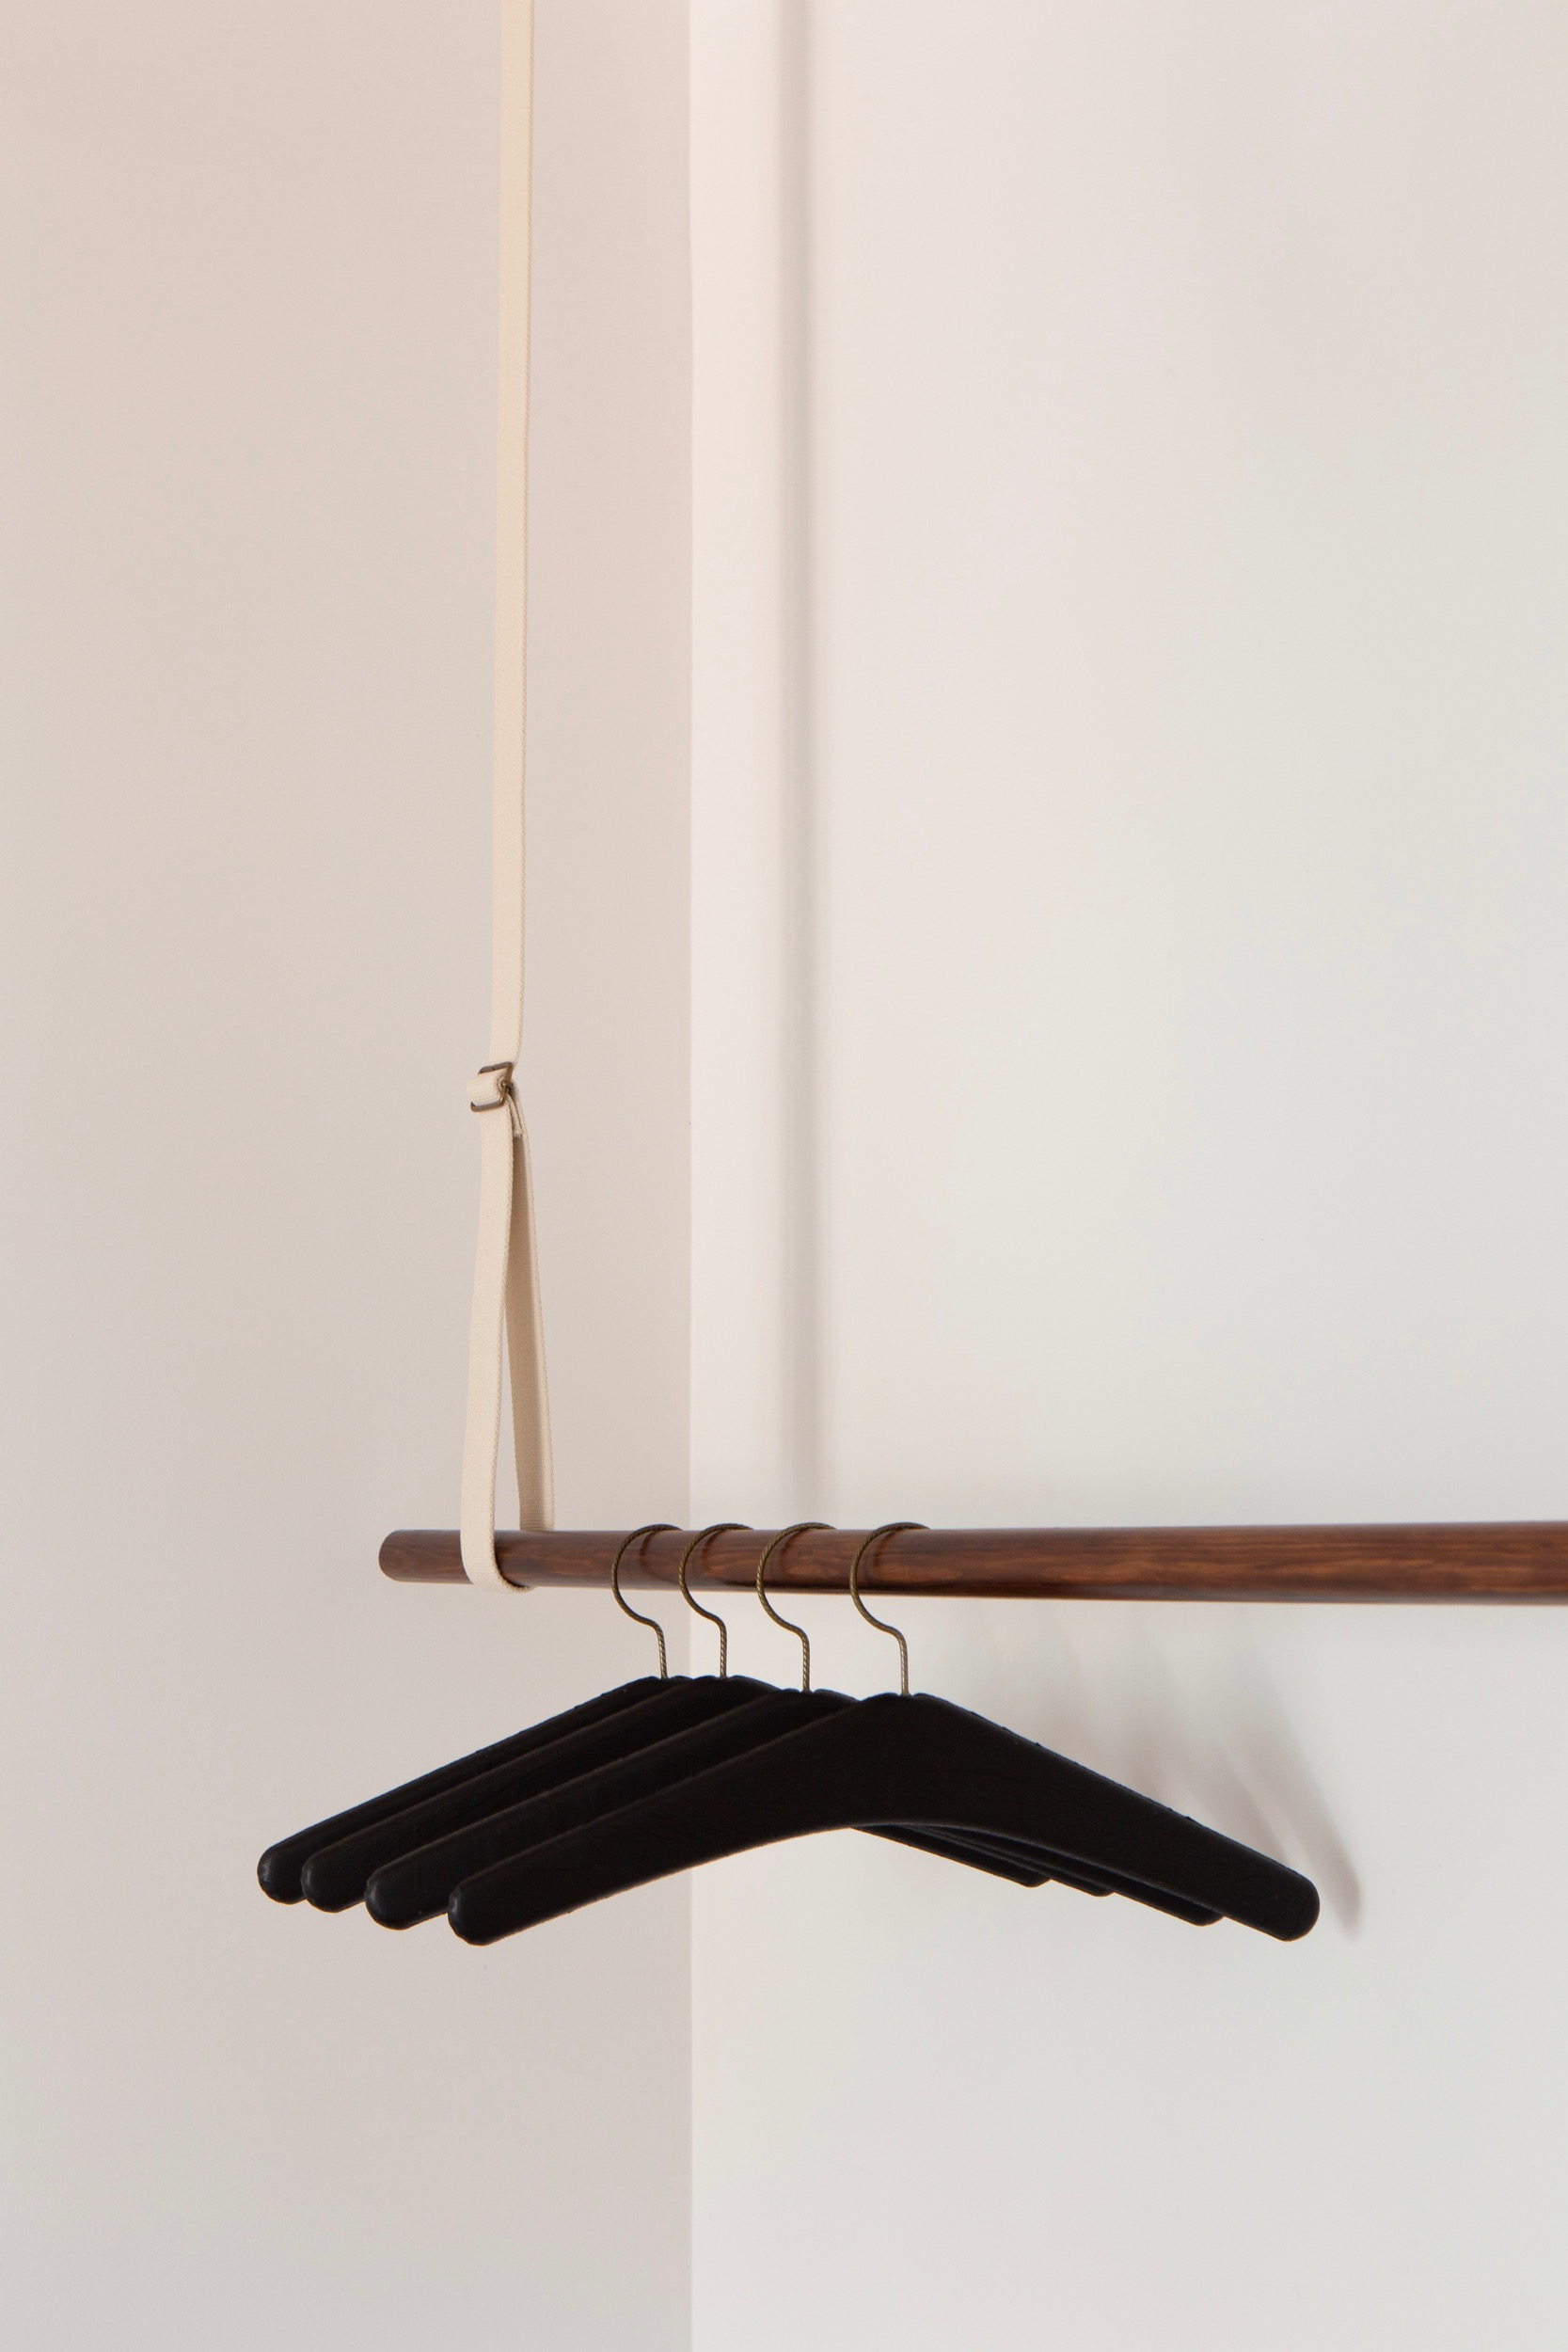 Detail photo of Lola Cwikowski Studio Travessa da Pereira Apartment residential project showing bedroom custom hanging system with vintage black leather hangers.